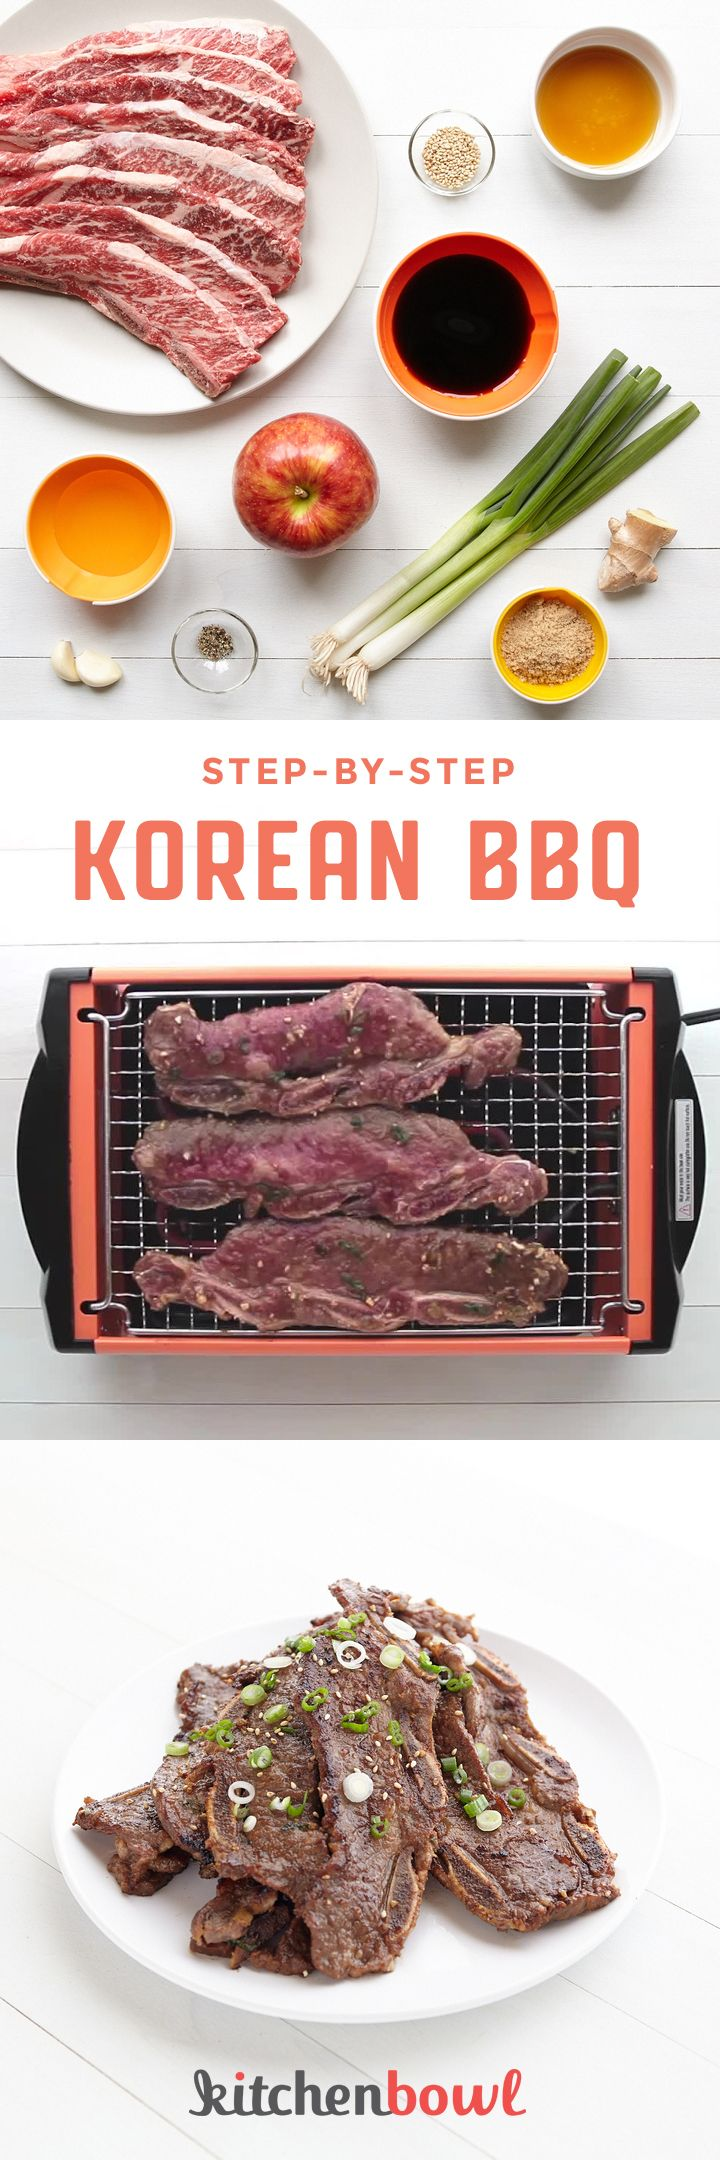 Kalbi. Galbi. LA-style or flanken short ribs. Whatever your name of choice, these Korean-style barbecue short ribs are always a crowd-pleaser.